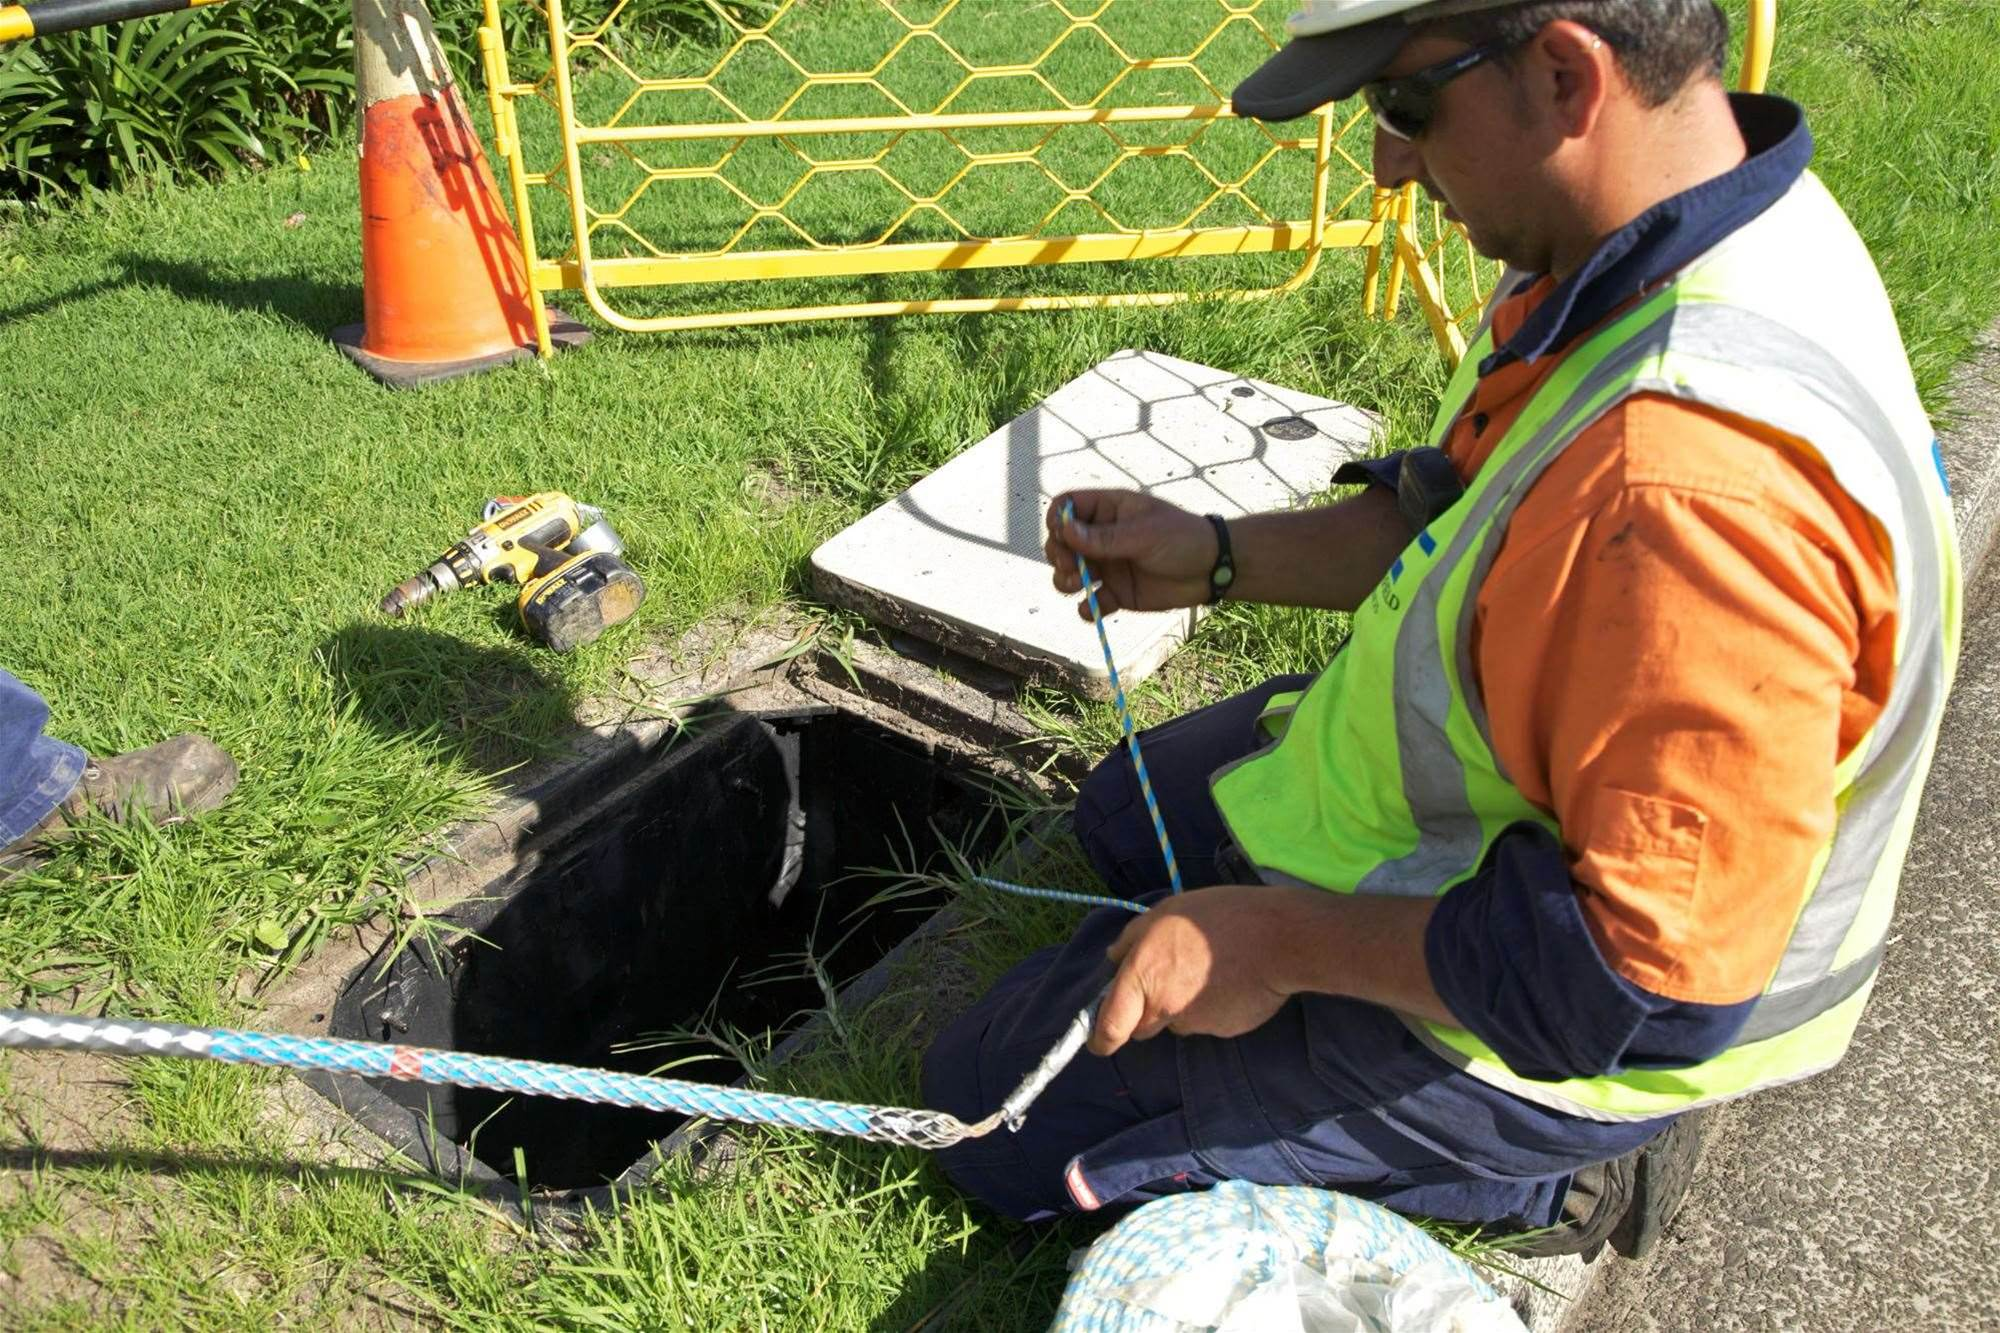 Cost to shut down NBN at least $2.3 billion